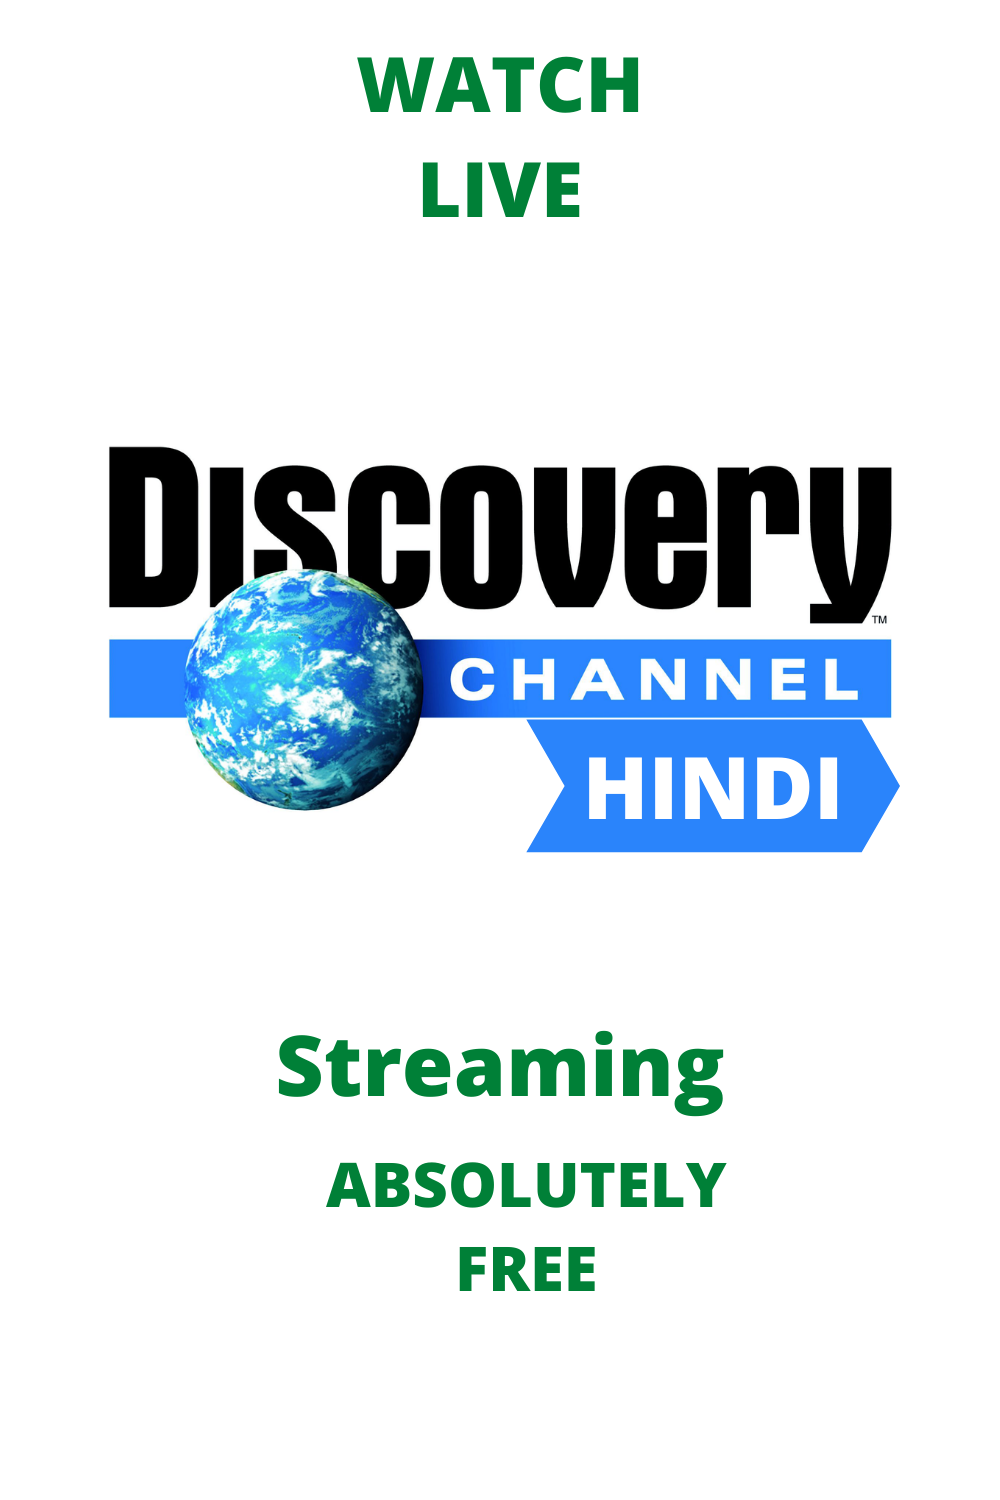 Watch Discovery Channel Hindi Live Streaming For Free In 2020 Discovery Channel Discovery Channel Shows Live Tv Free